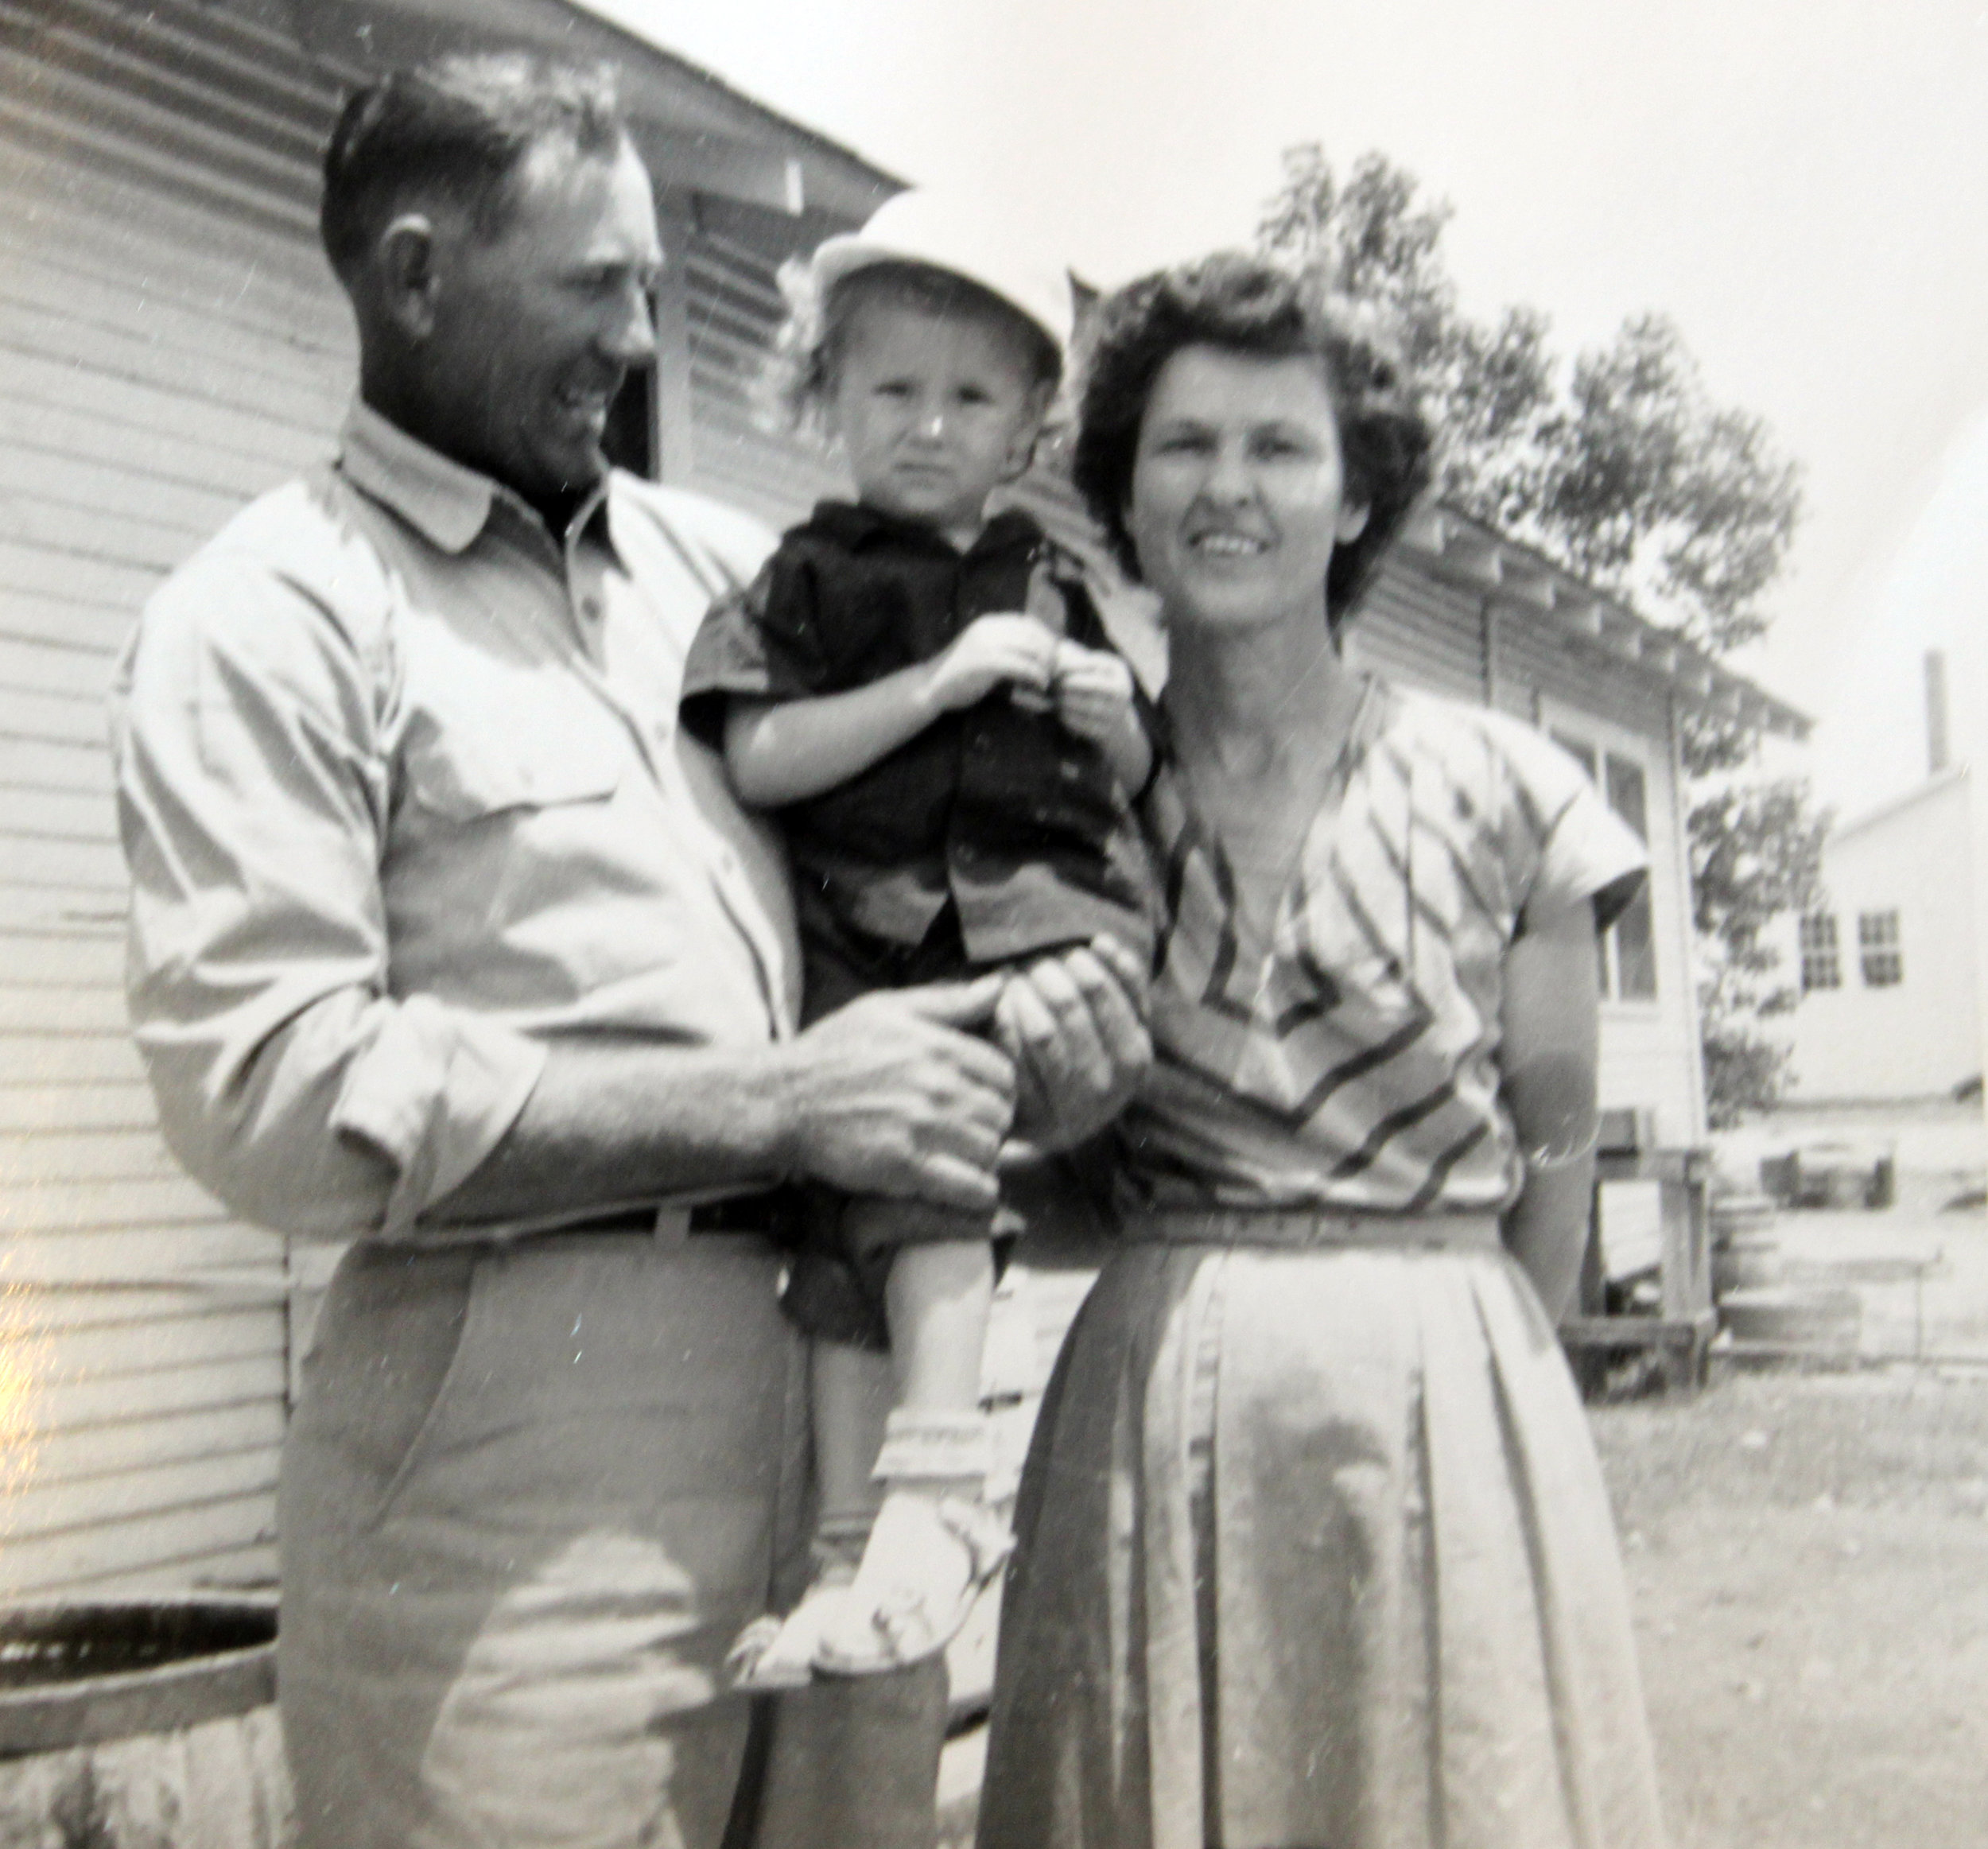 Billy and Mac McDonald, holding Debby, in front of their Winningkoff house in 1952.